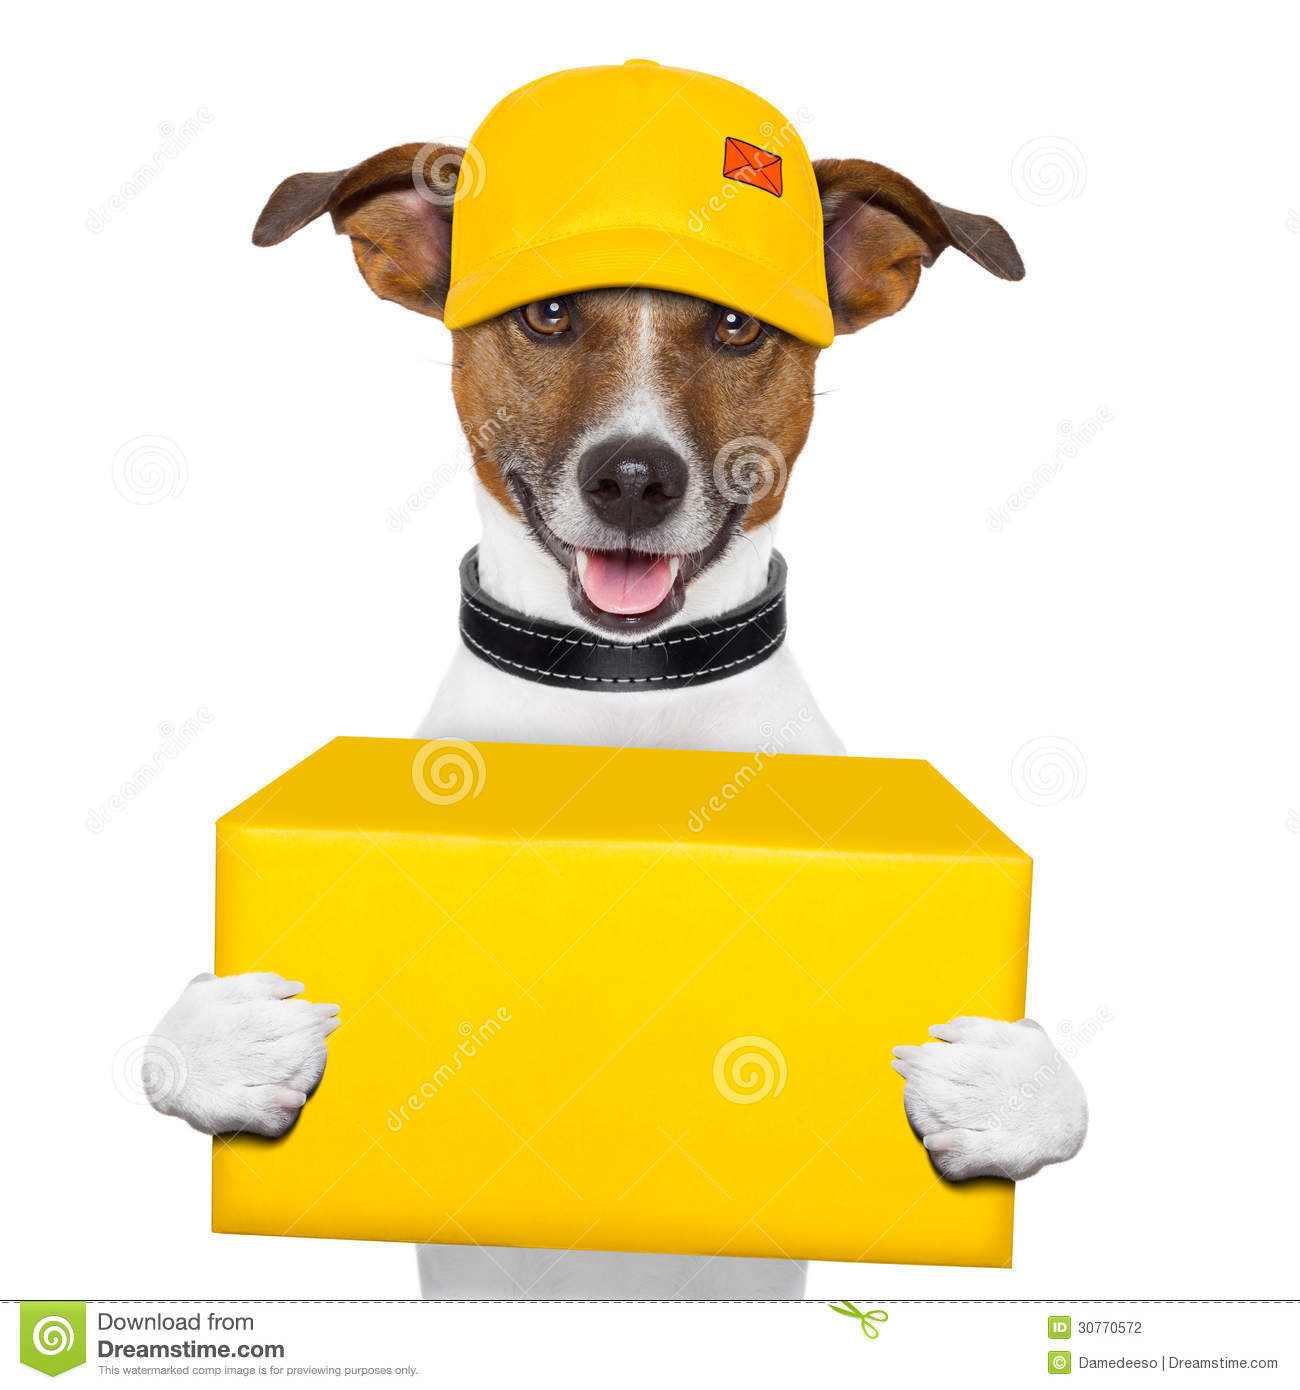 Dog Delivery Post Stock Photo. Image Of Cardboard, Driver